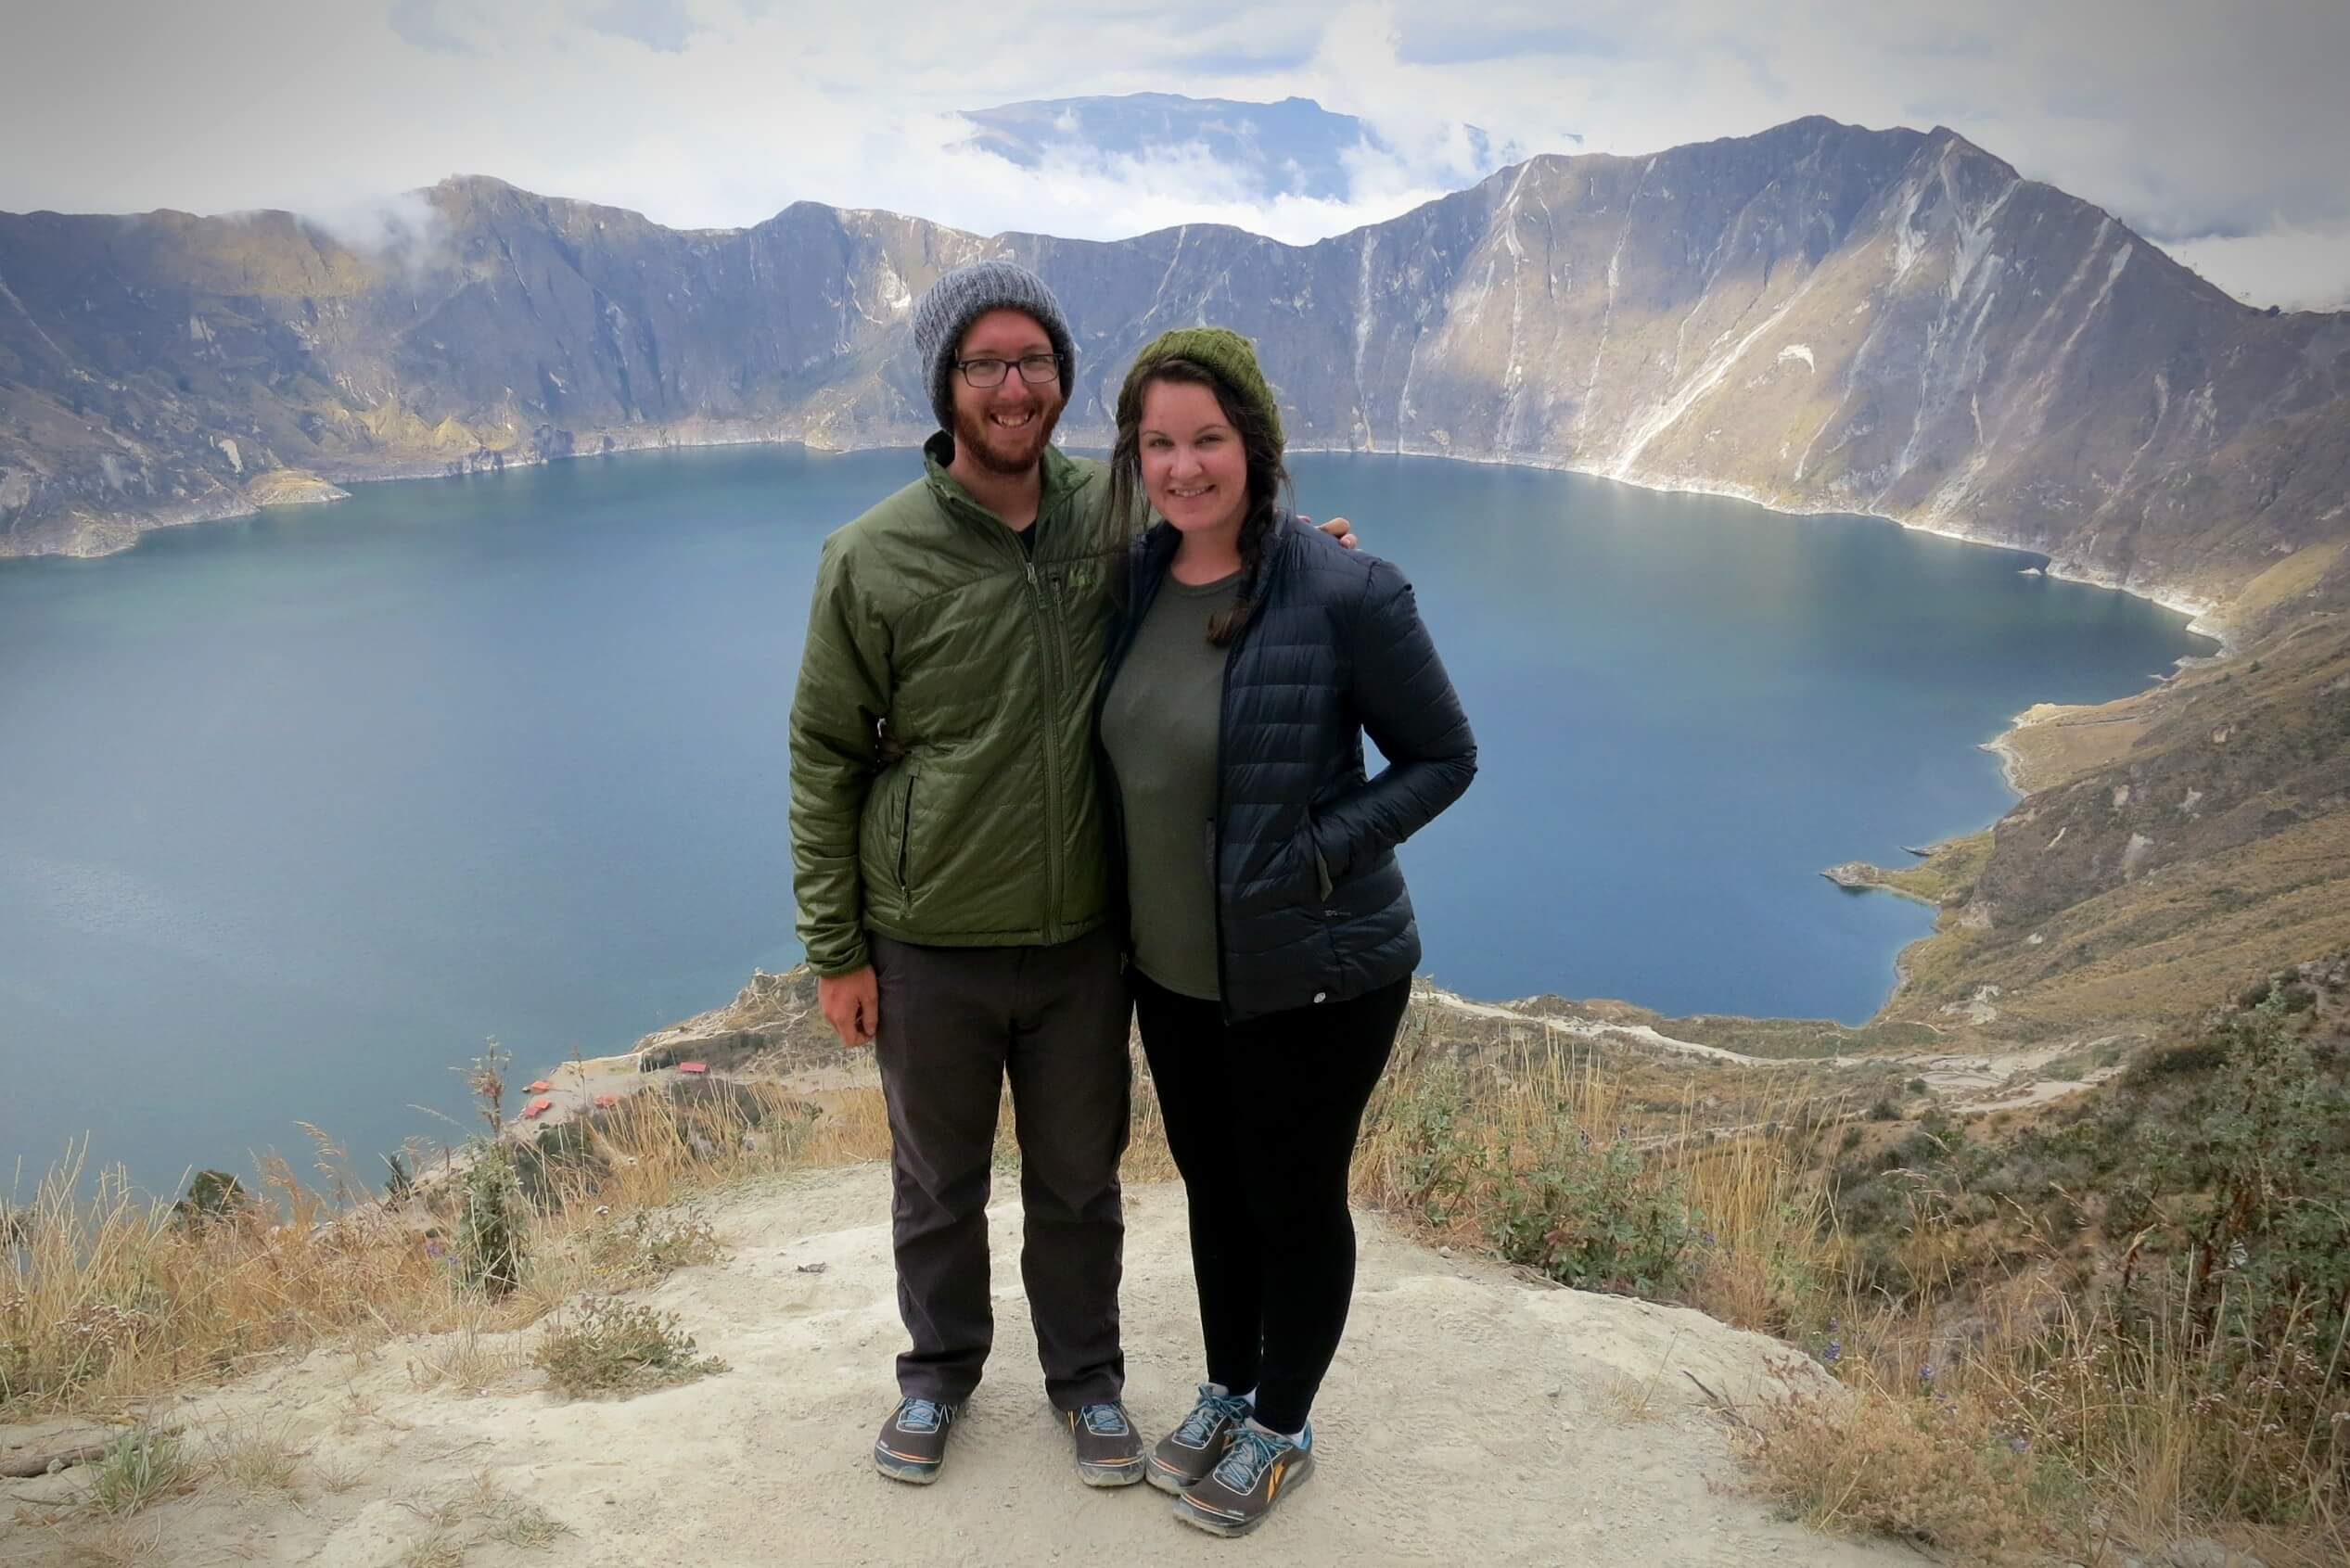 Lia and Jeremy, the owners of PracticalWanderlust.com, wearing obnoxiously matching outfits in front of the Quilotoa Lake in Ecuador.